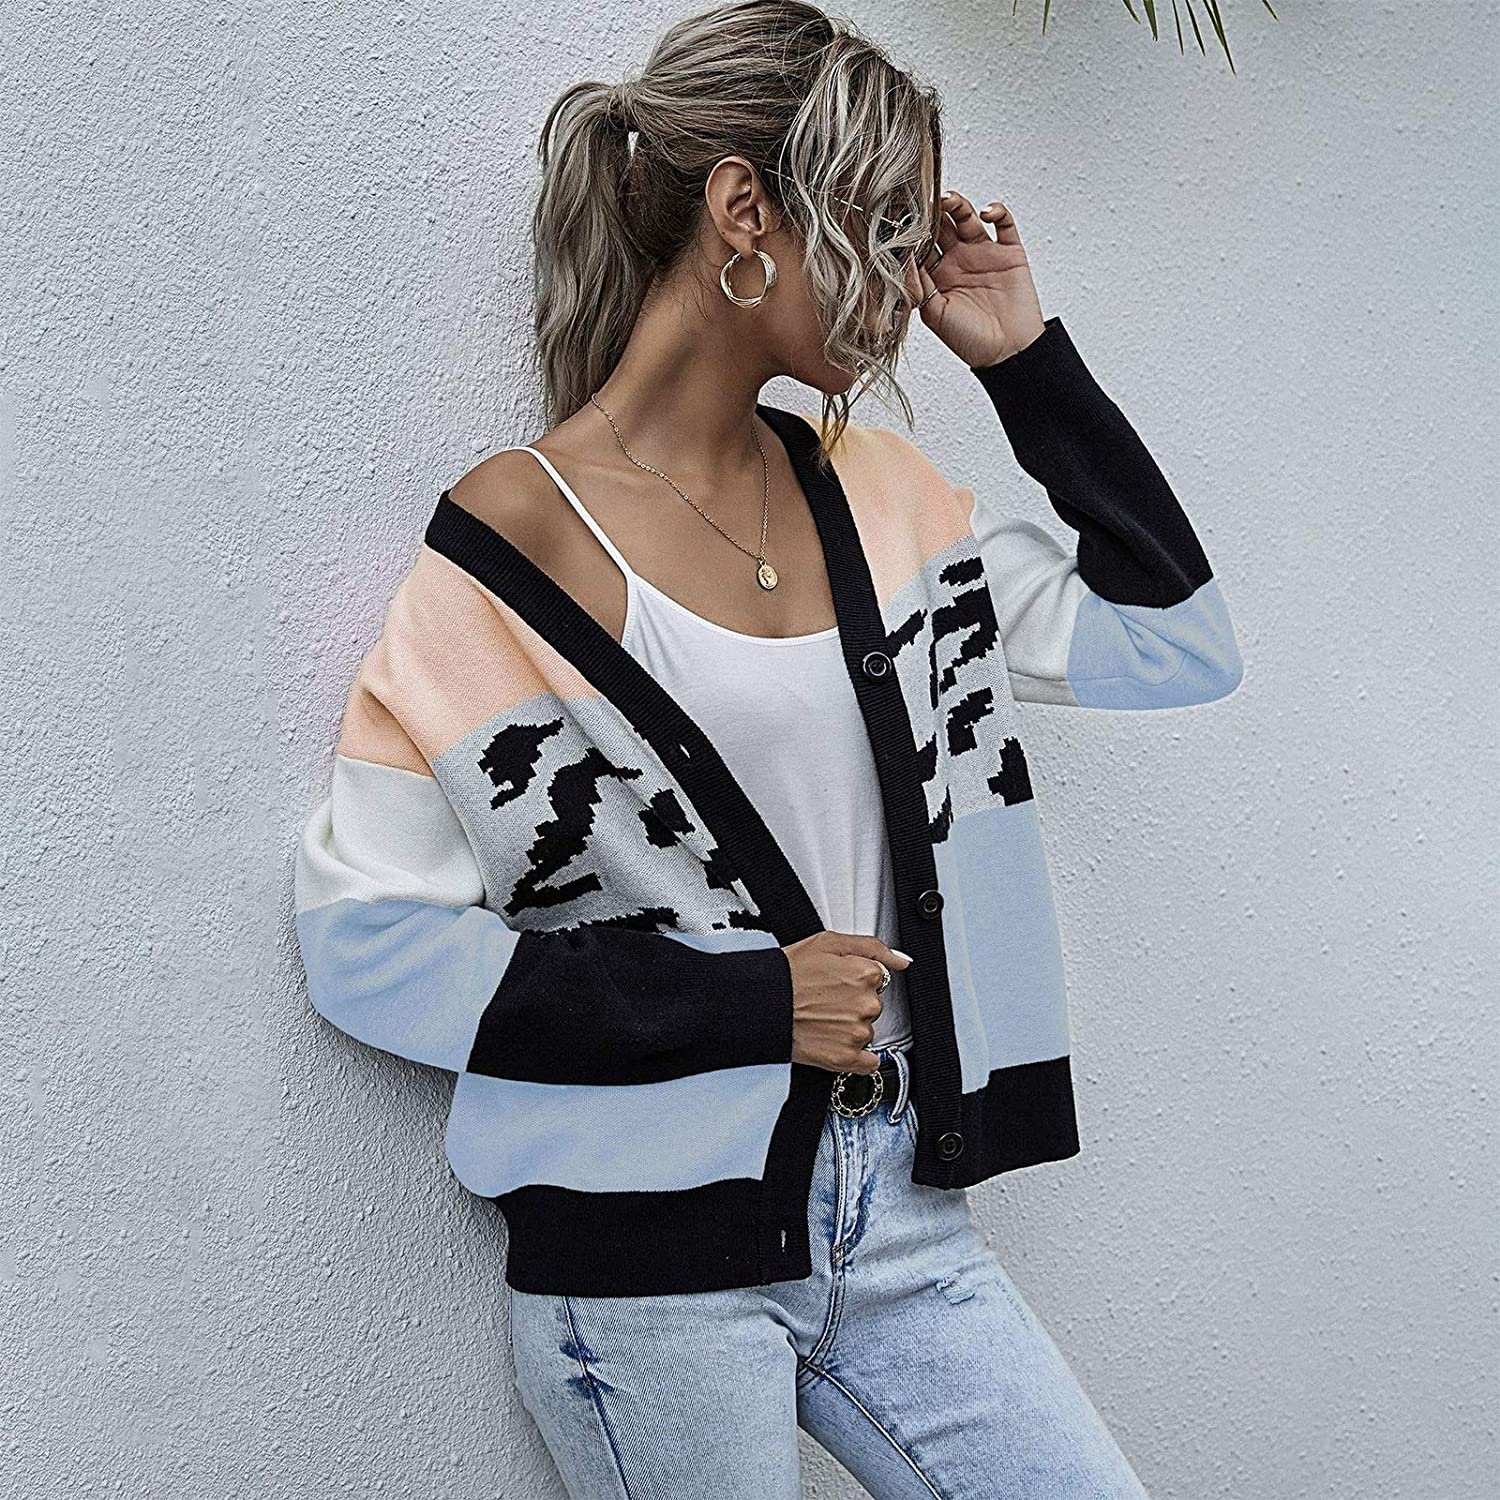 Liandan Women's V-Neck Don't miss the campaign Single Quantity limited Breasted Double Pockets Cardigan L